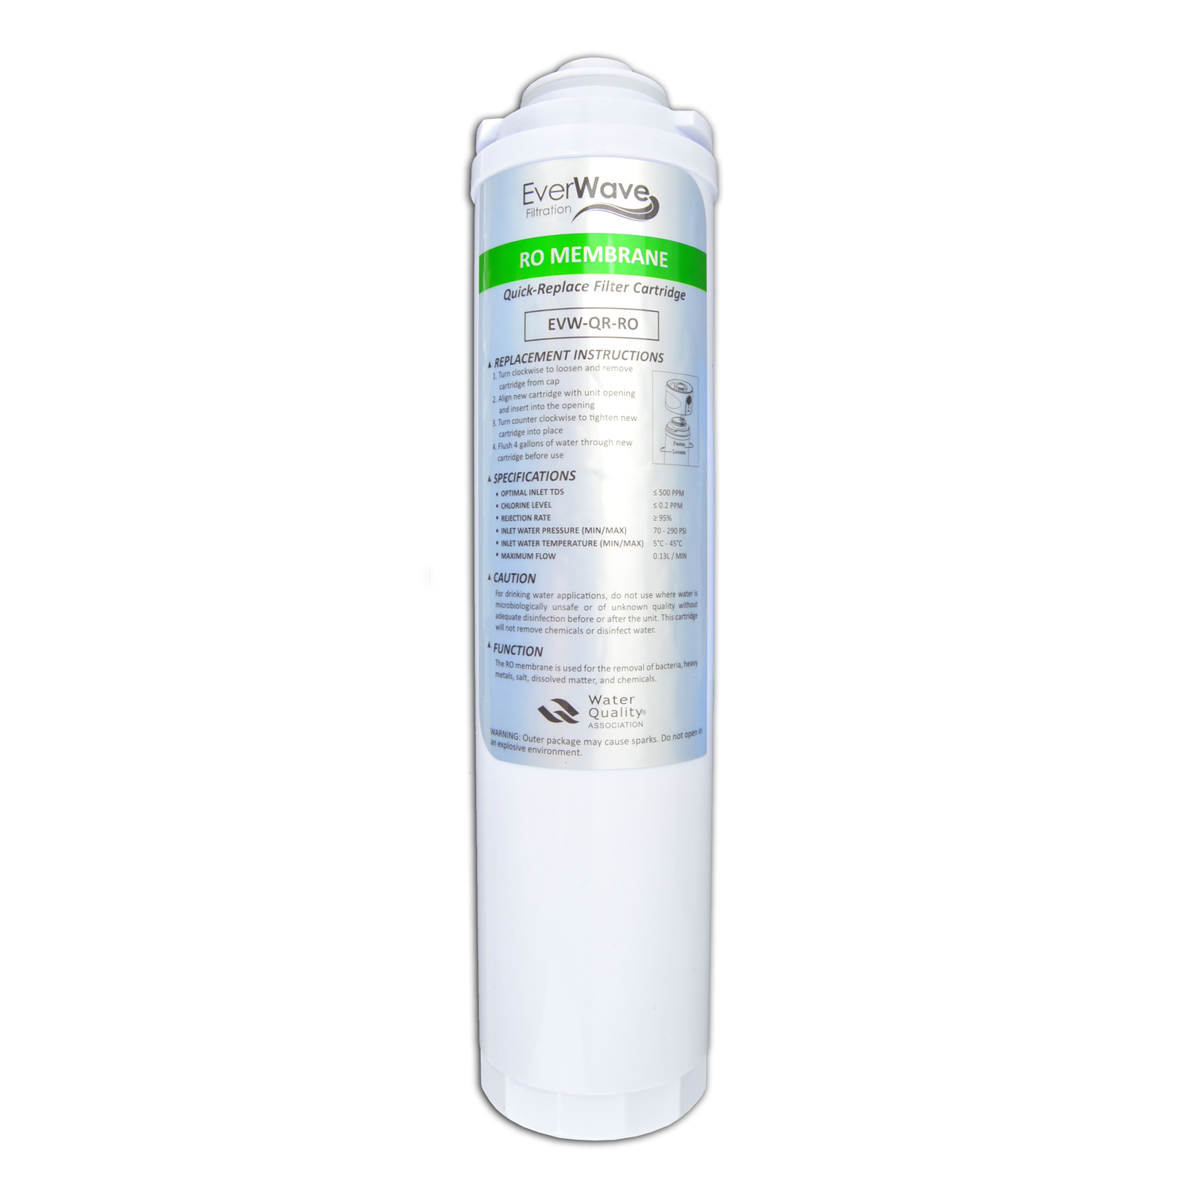 RO Filter - This reverse osmosis filter removes everything the UF filter catches and then some from your water. It is able to capture dissolved mineral particles with ease!